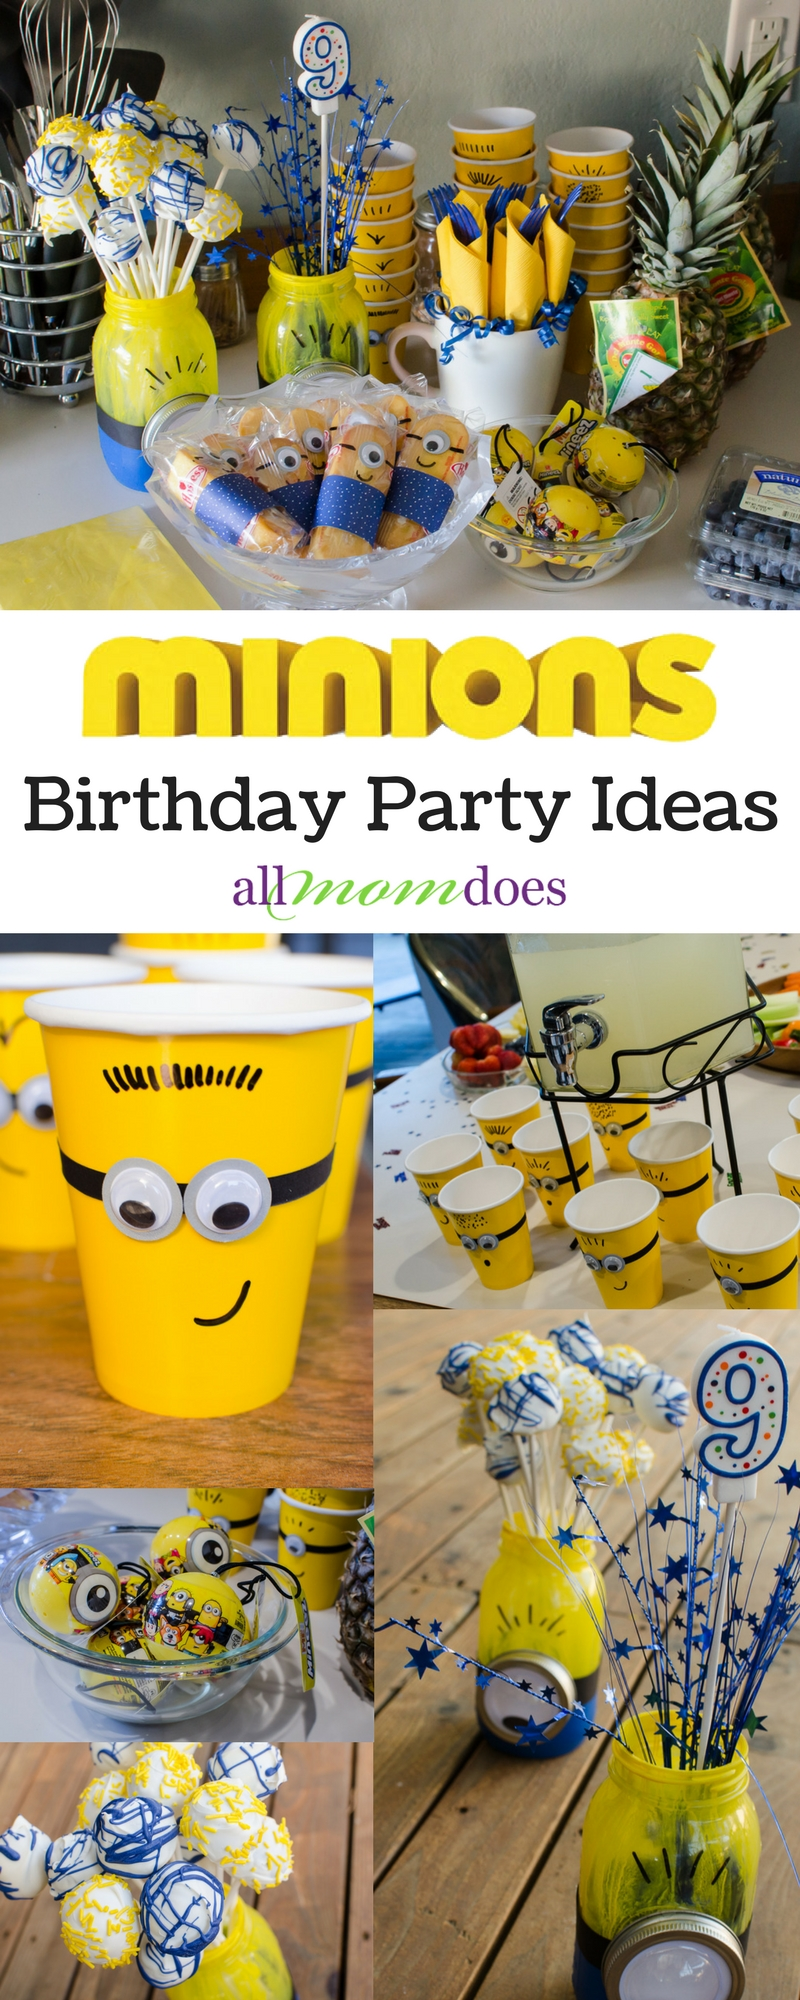 Minions Birthday Party Ideas Creative Budget Friendly For A Or Despicable Me